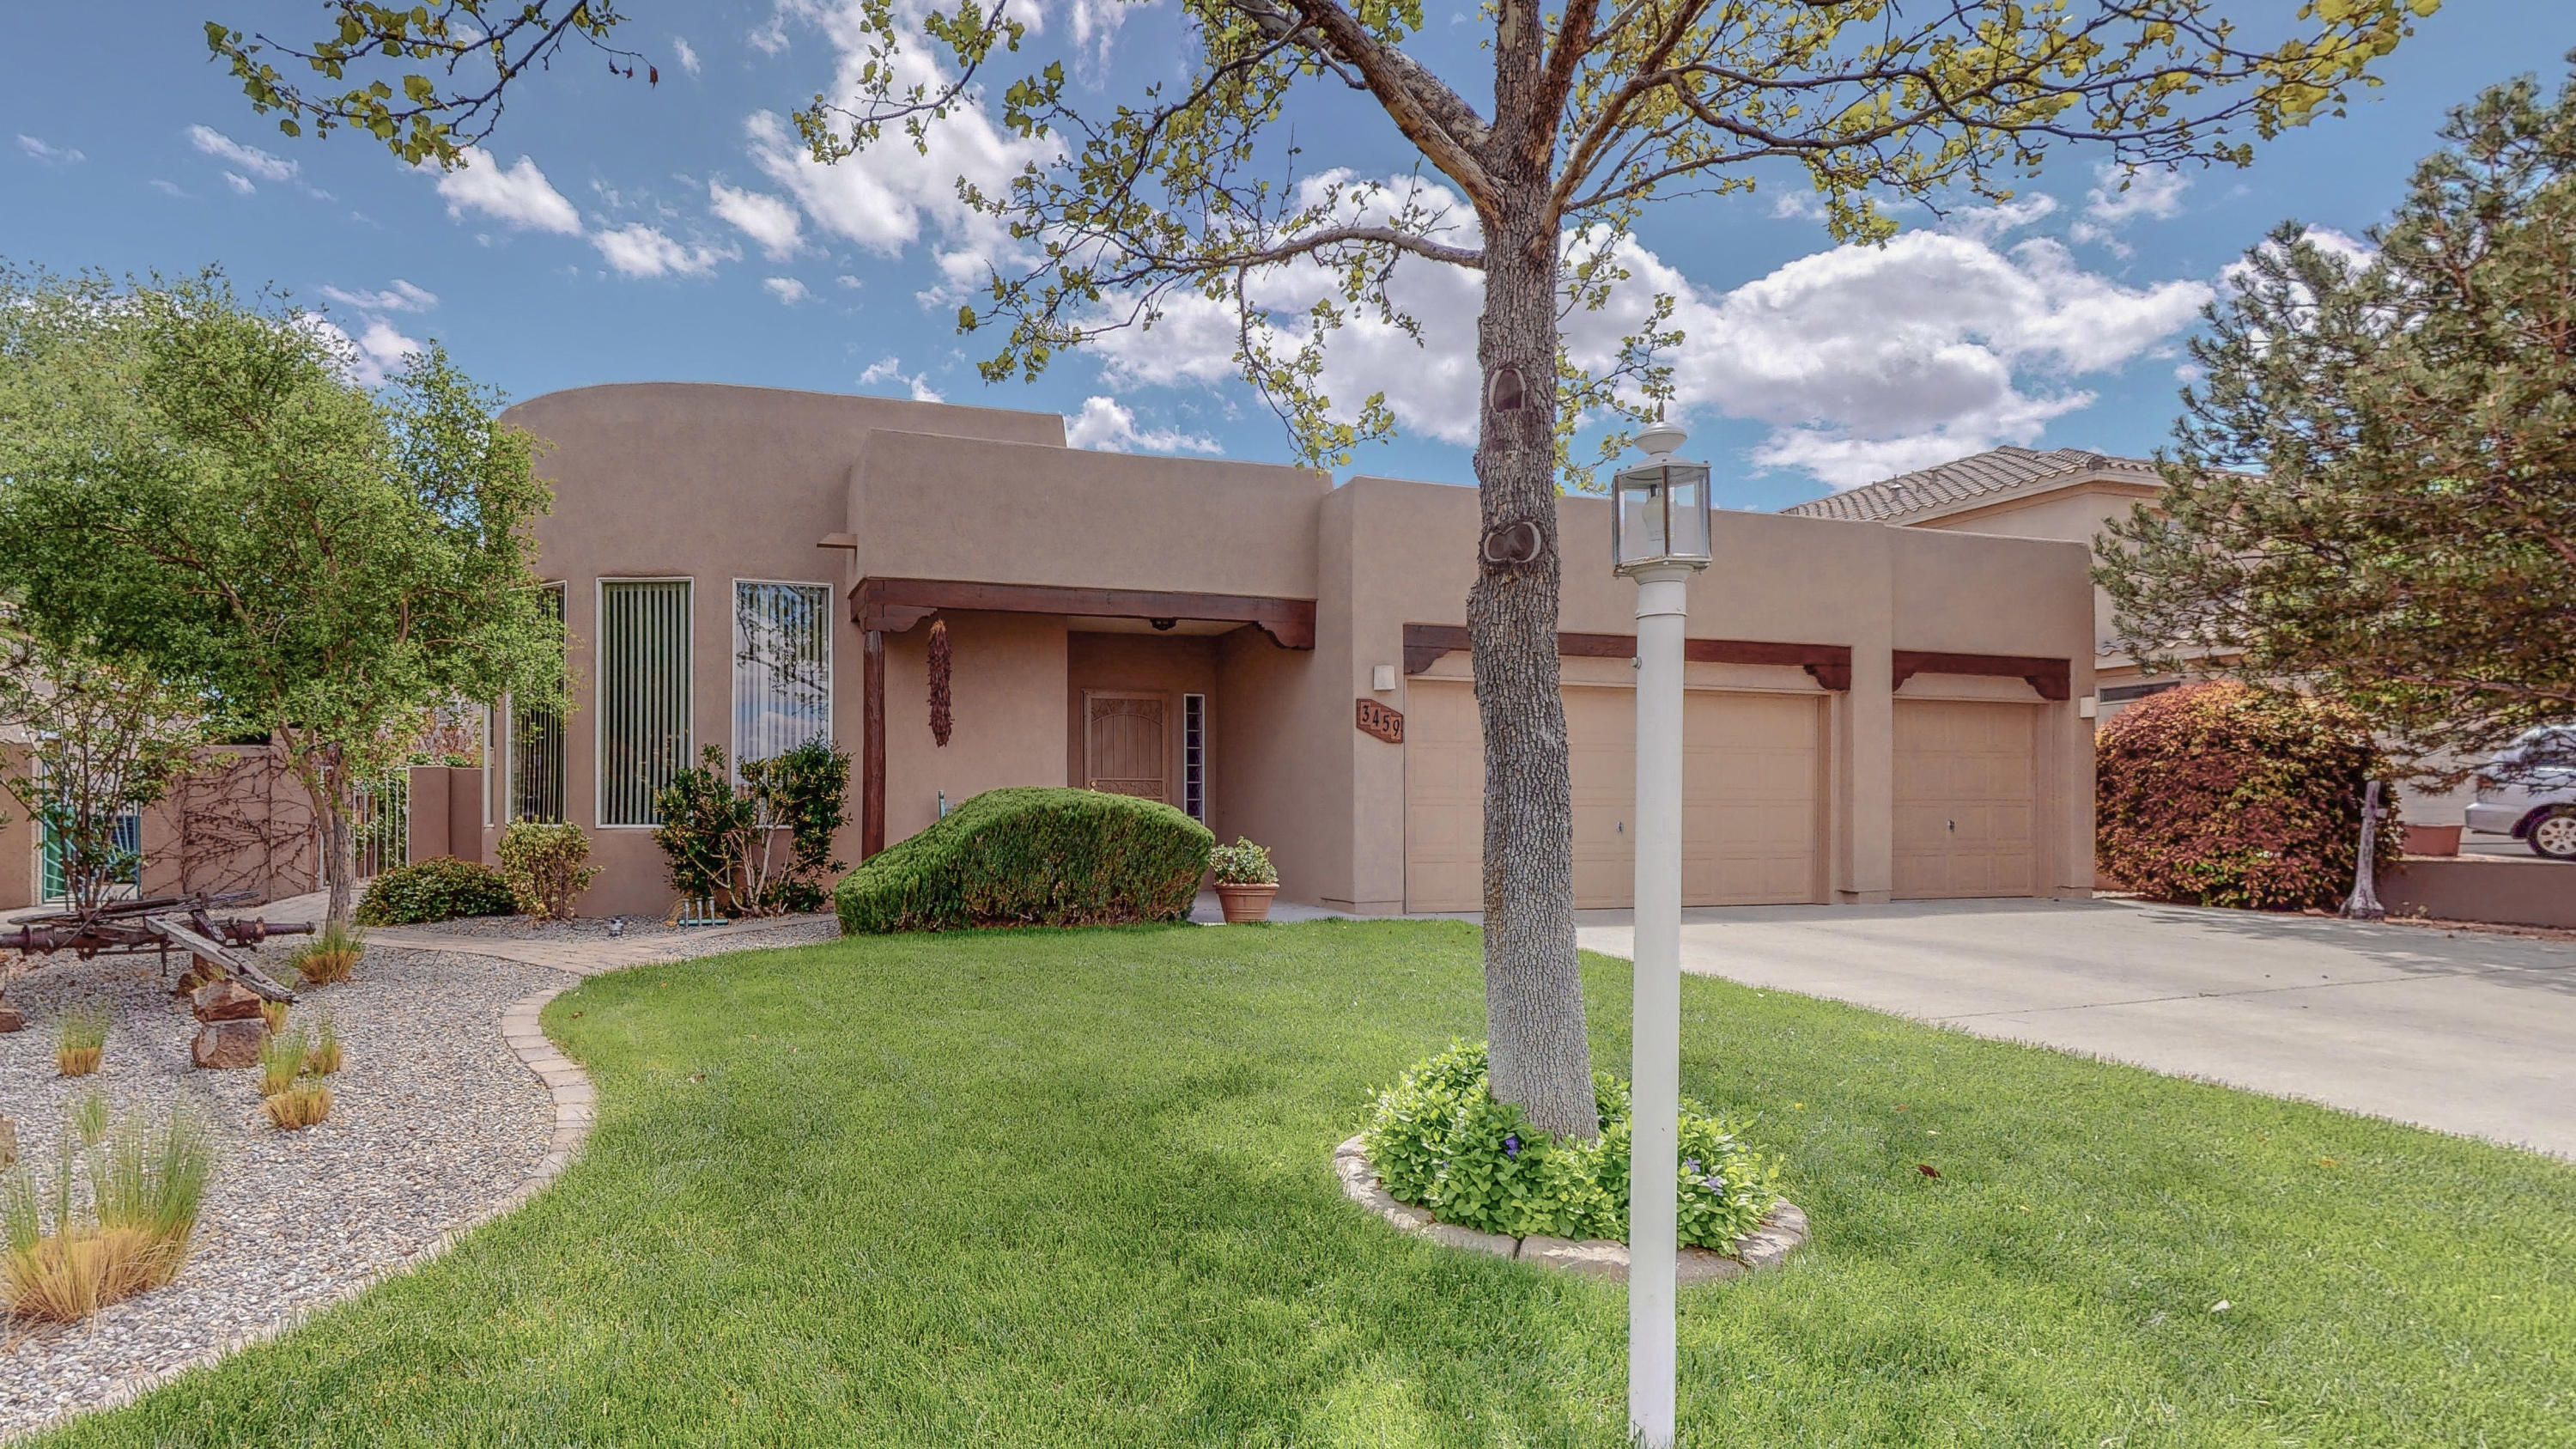 Do not miss this opportunity to own a home in the desirable Stonehenge Subdivision. This well maintained single story home features vaulted ceilings with exposed wood beams, a cozy kiva fireplace, and tray ceilings in the formal dining room and master bedroom. Open kitchen with island, granite countertops, walk in pantry and plenty of cabinet space. Home has custom rounded walls off master bedroom opening up to a backyard oasis of flowering plants and trees with a large covered patio. New roof, AC, Furnace, and stucco in 2018. Stainless steel refrigerator, microwave, and washer and dryer convey with the home. Schedule your showing today!